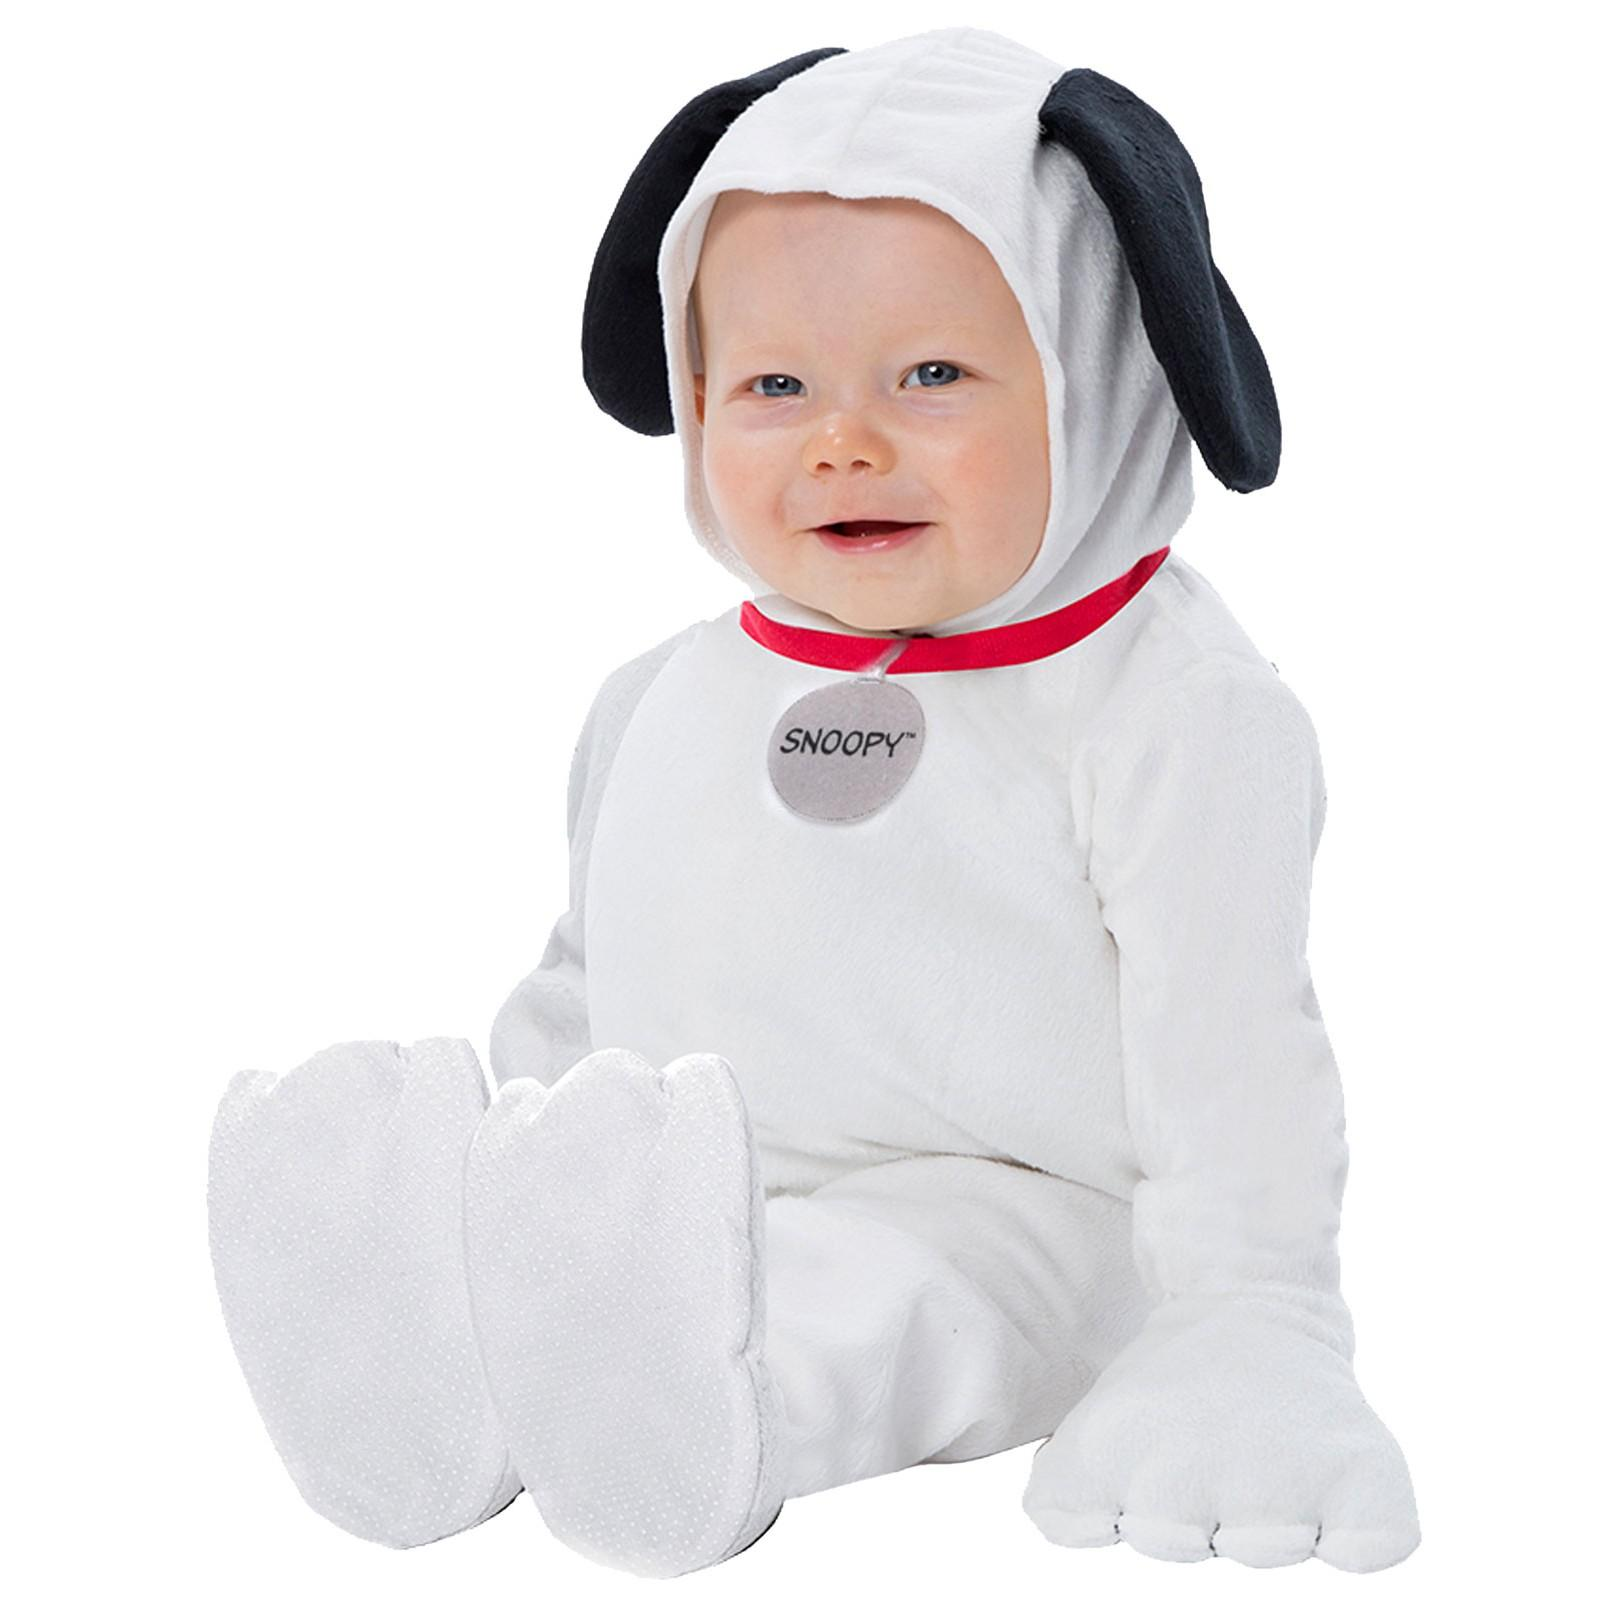 Snoopy Infant Costume